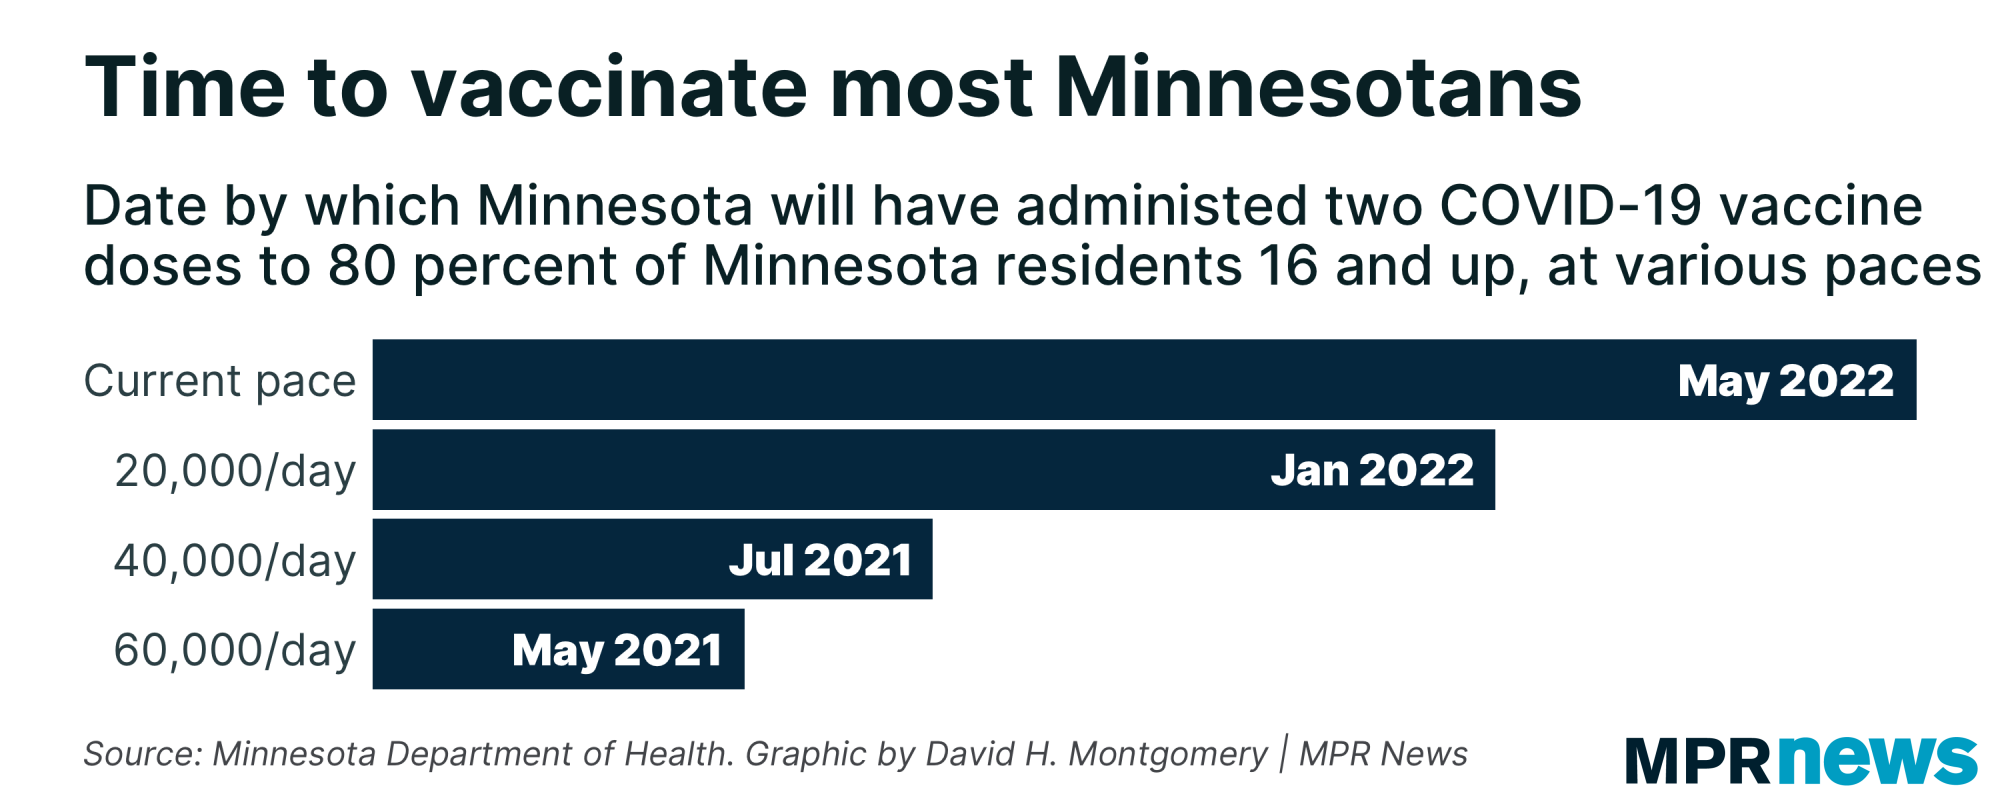 Time to vaccinate most Minnesotans at current pace